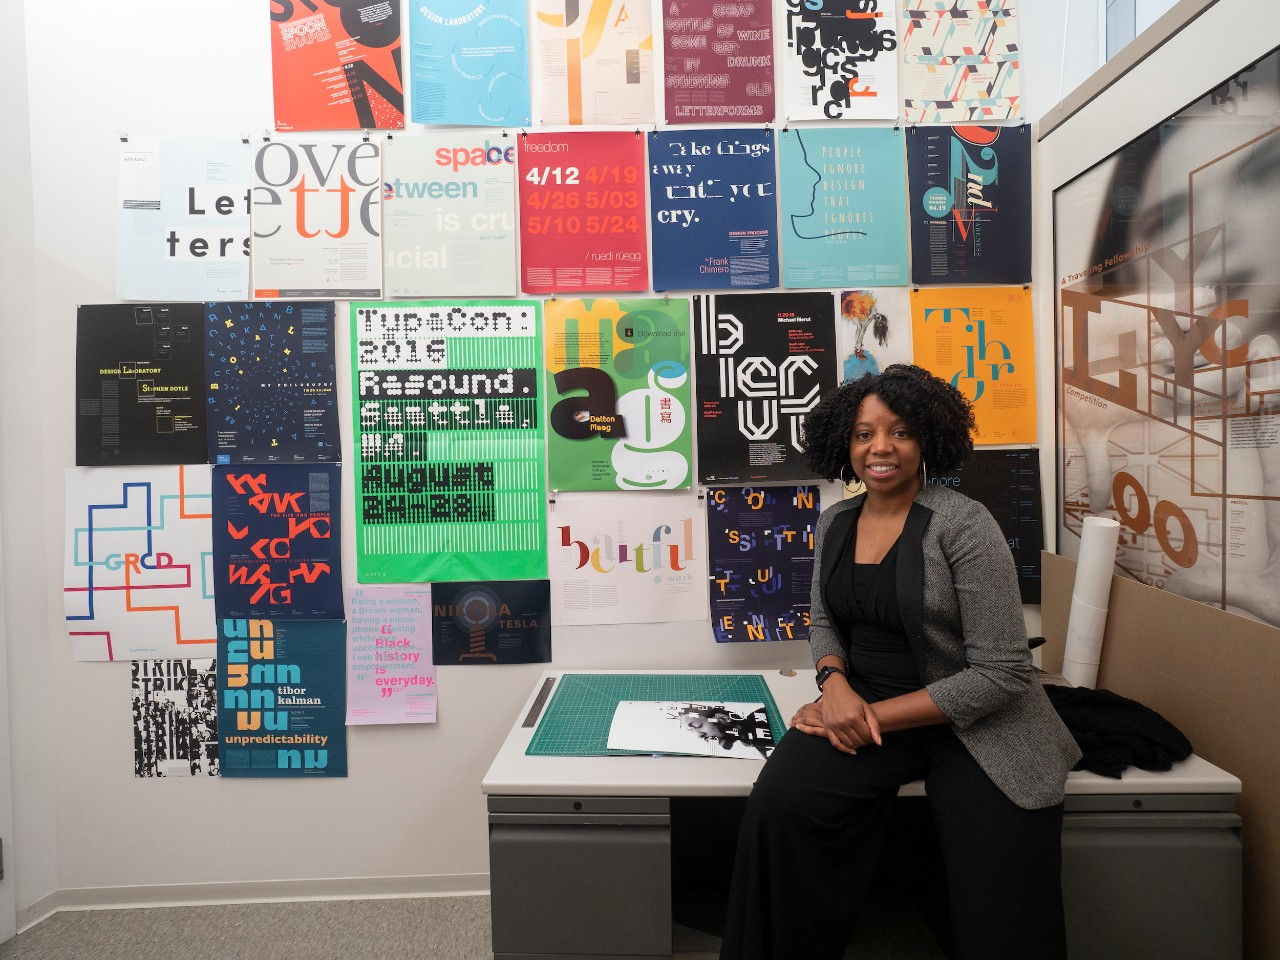 Reneé Seward poses in her office in front of posters